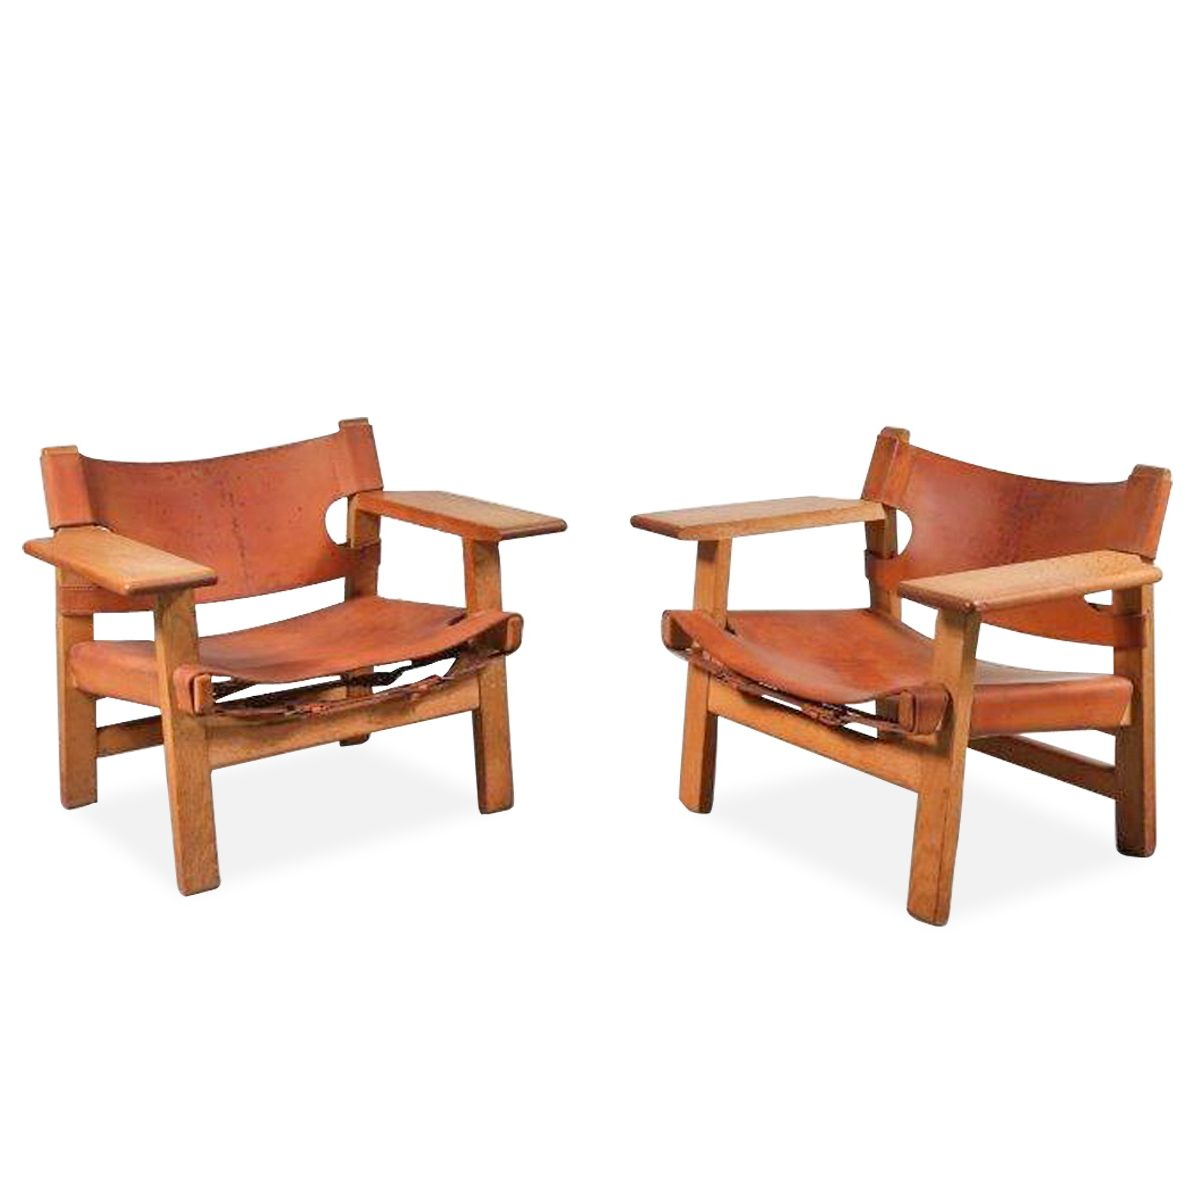 D 190801 (200) A beautiful pair of Spanish chairs, designed by Børge Mogensen for Frederica Stolefabrik, Denmark, circa 1950.